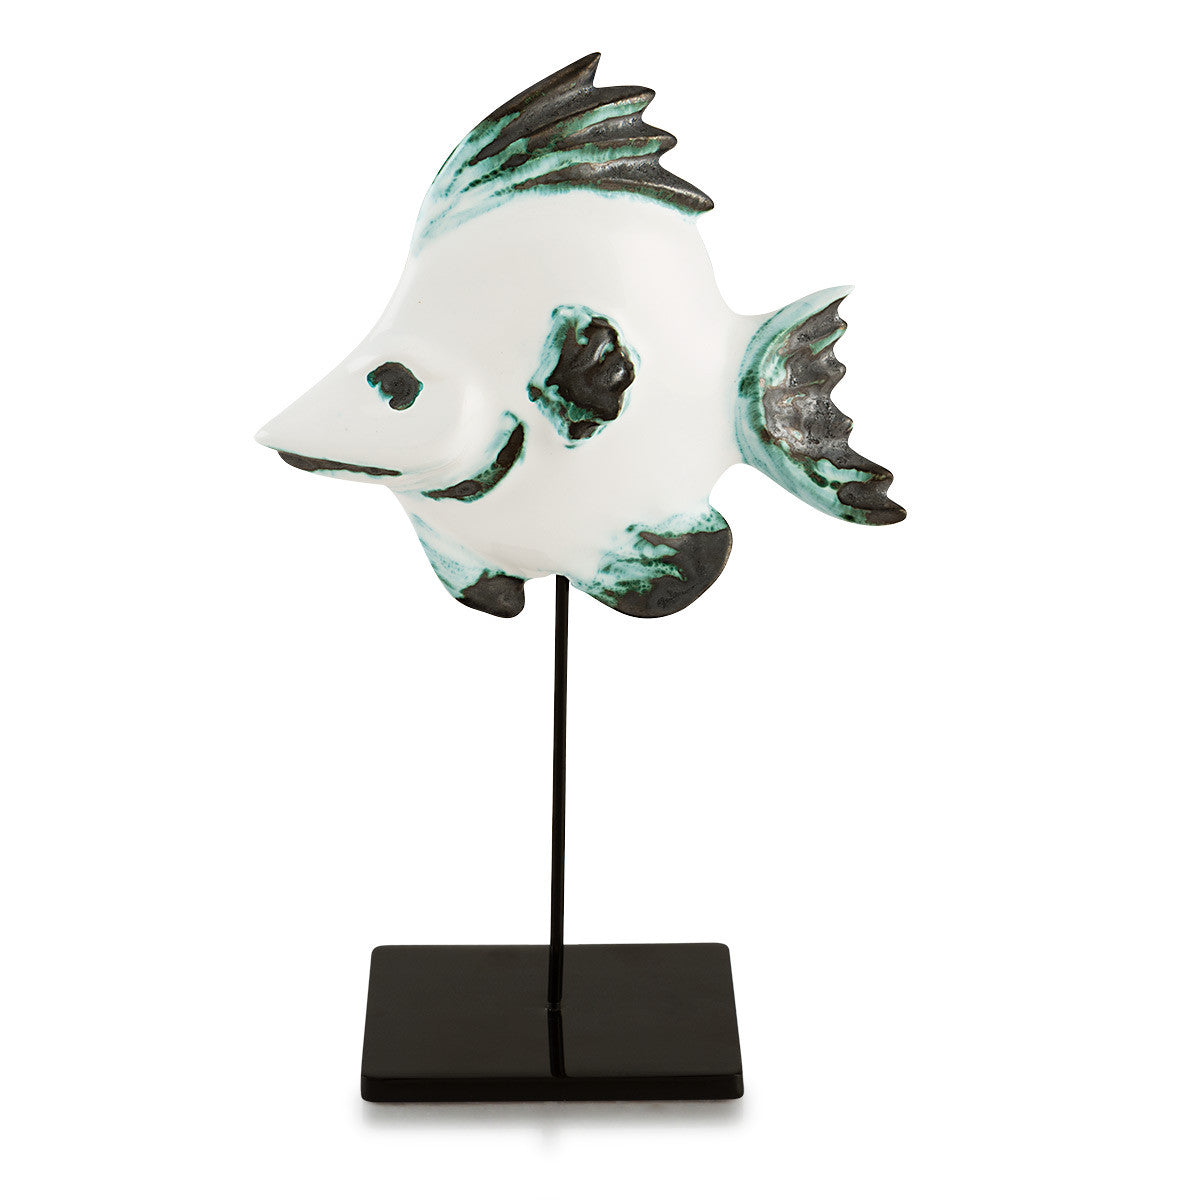 Ceramic tropical fish on stick modern design, nautical decor